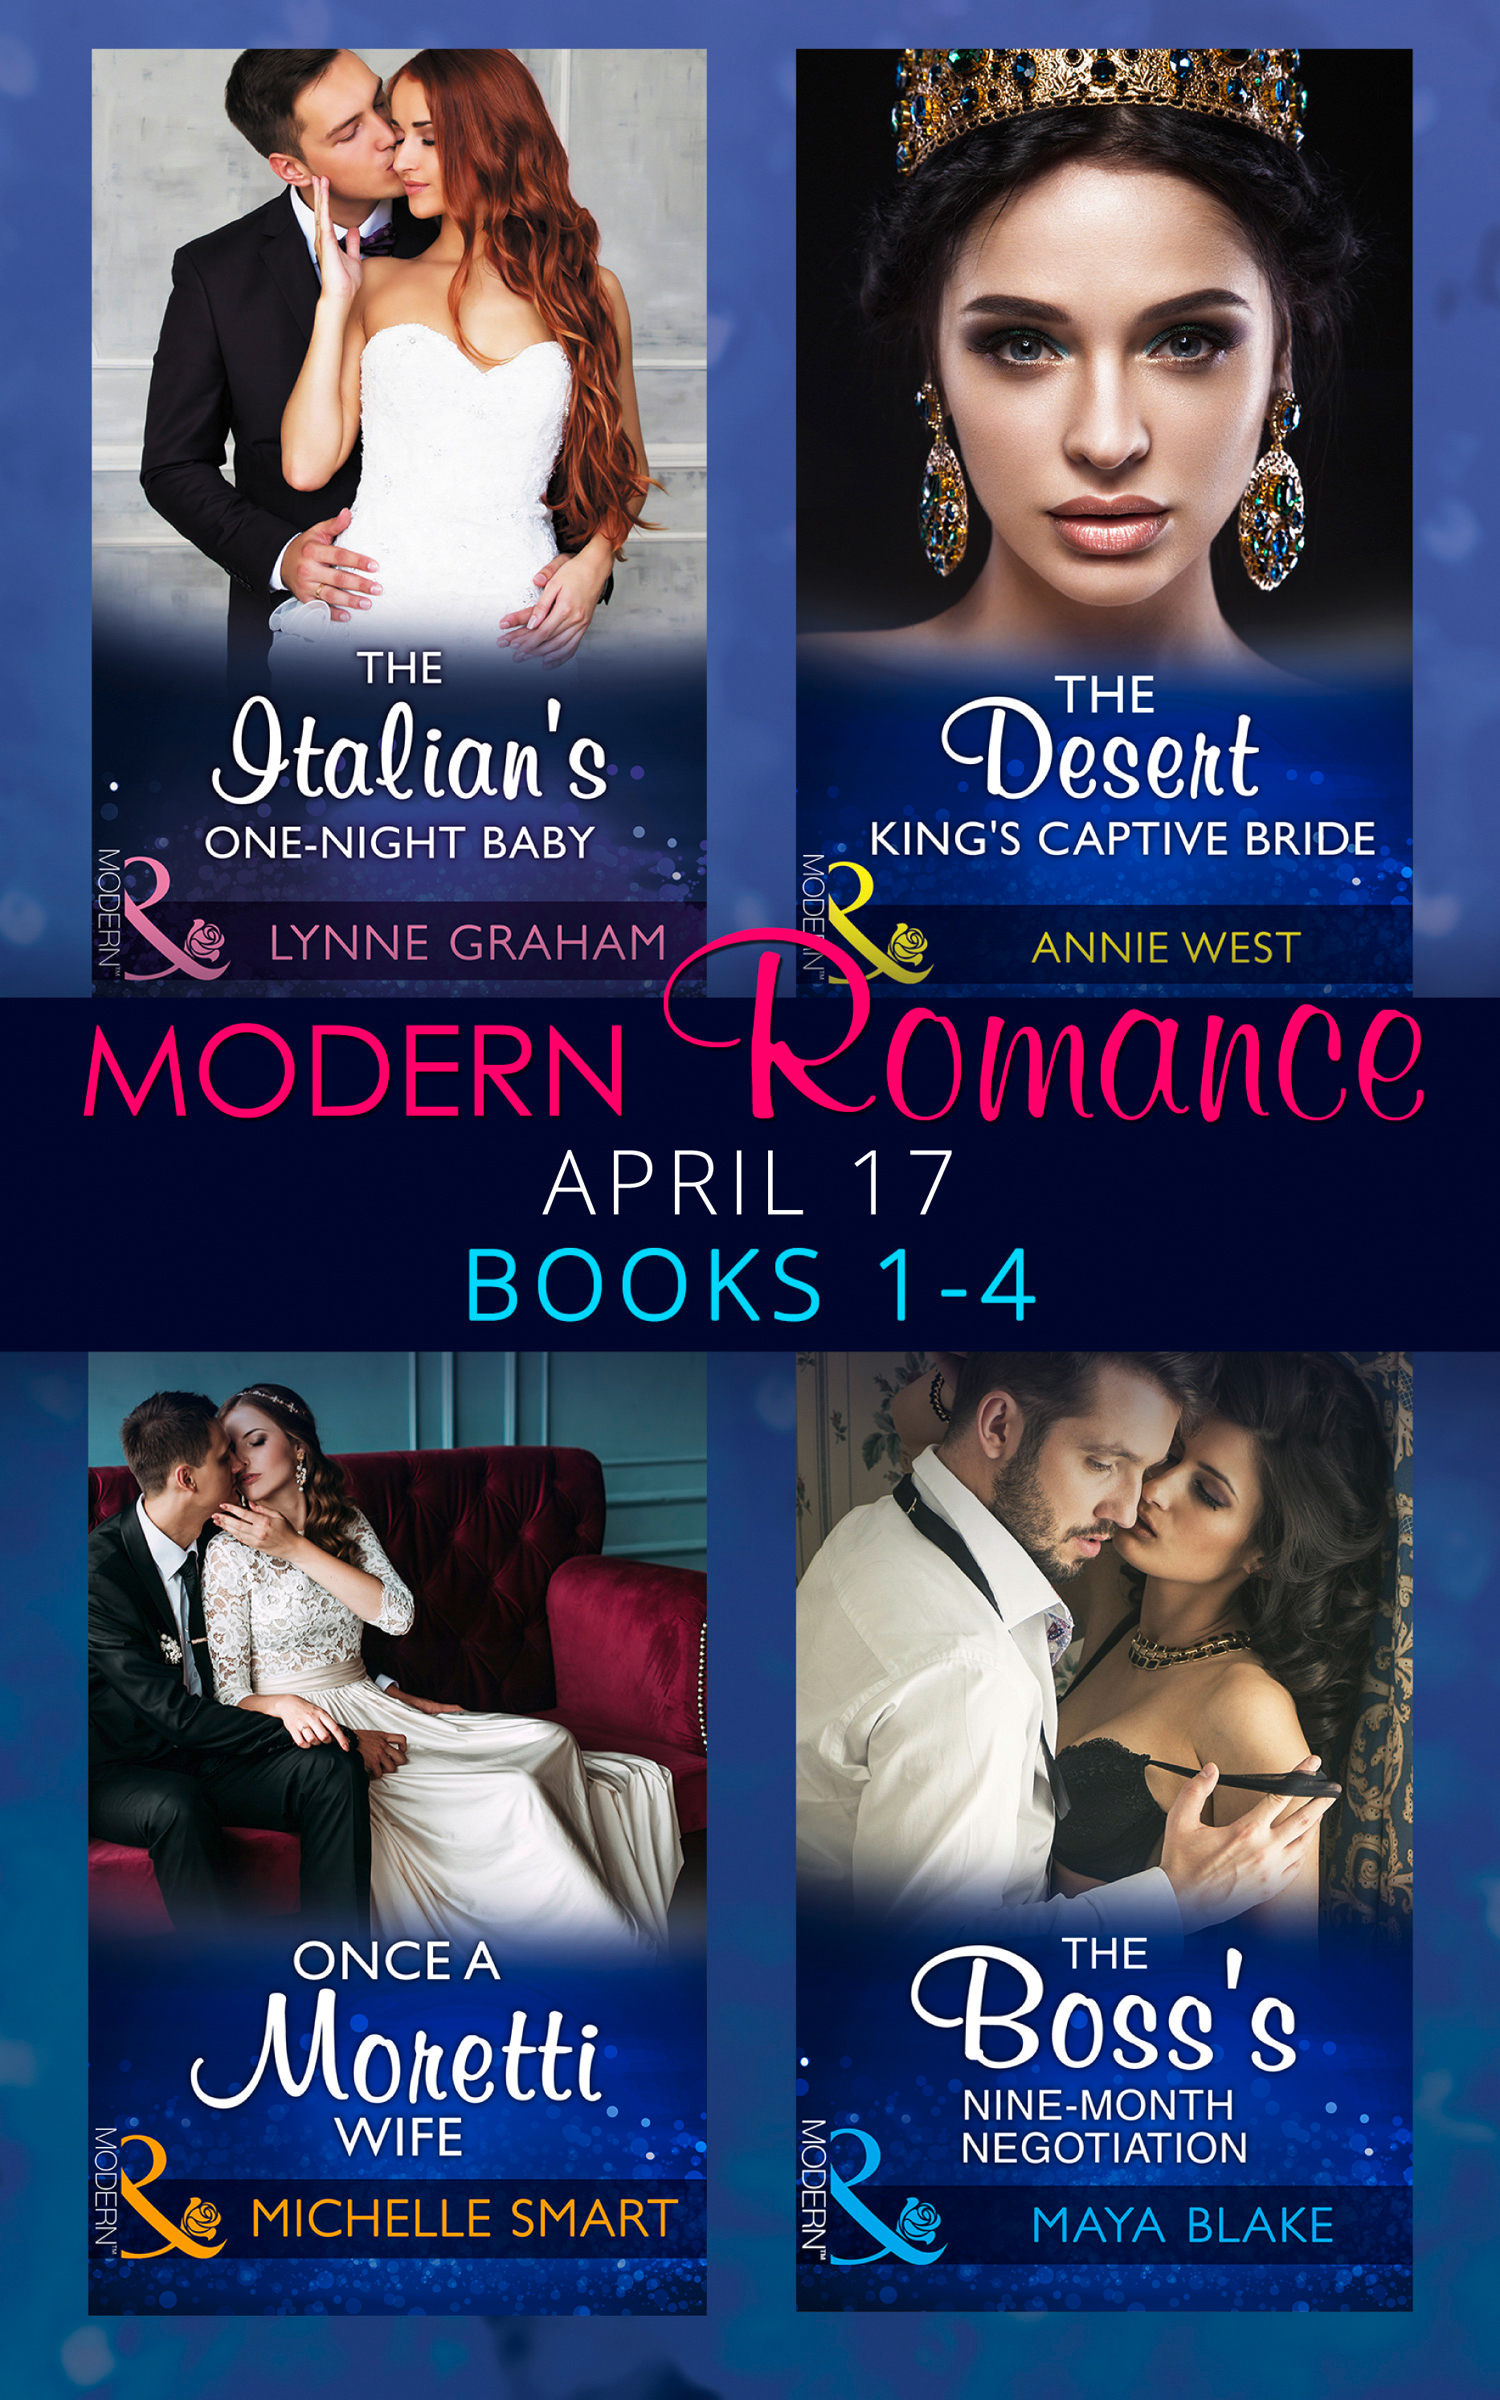 Modern Romance April 2017 Books 1-4